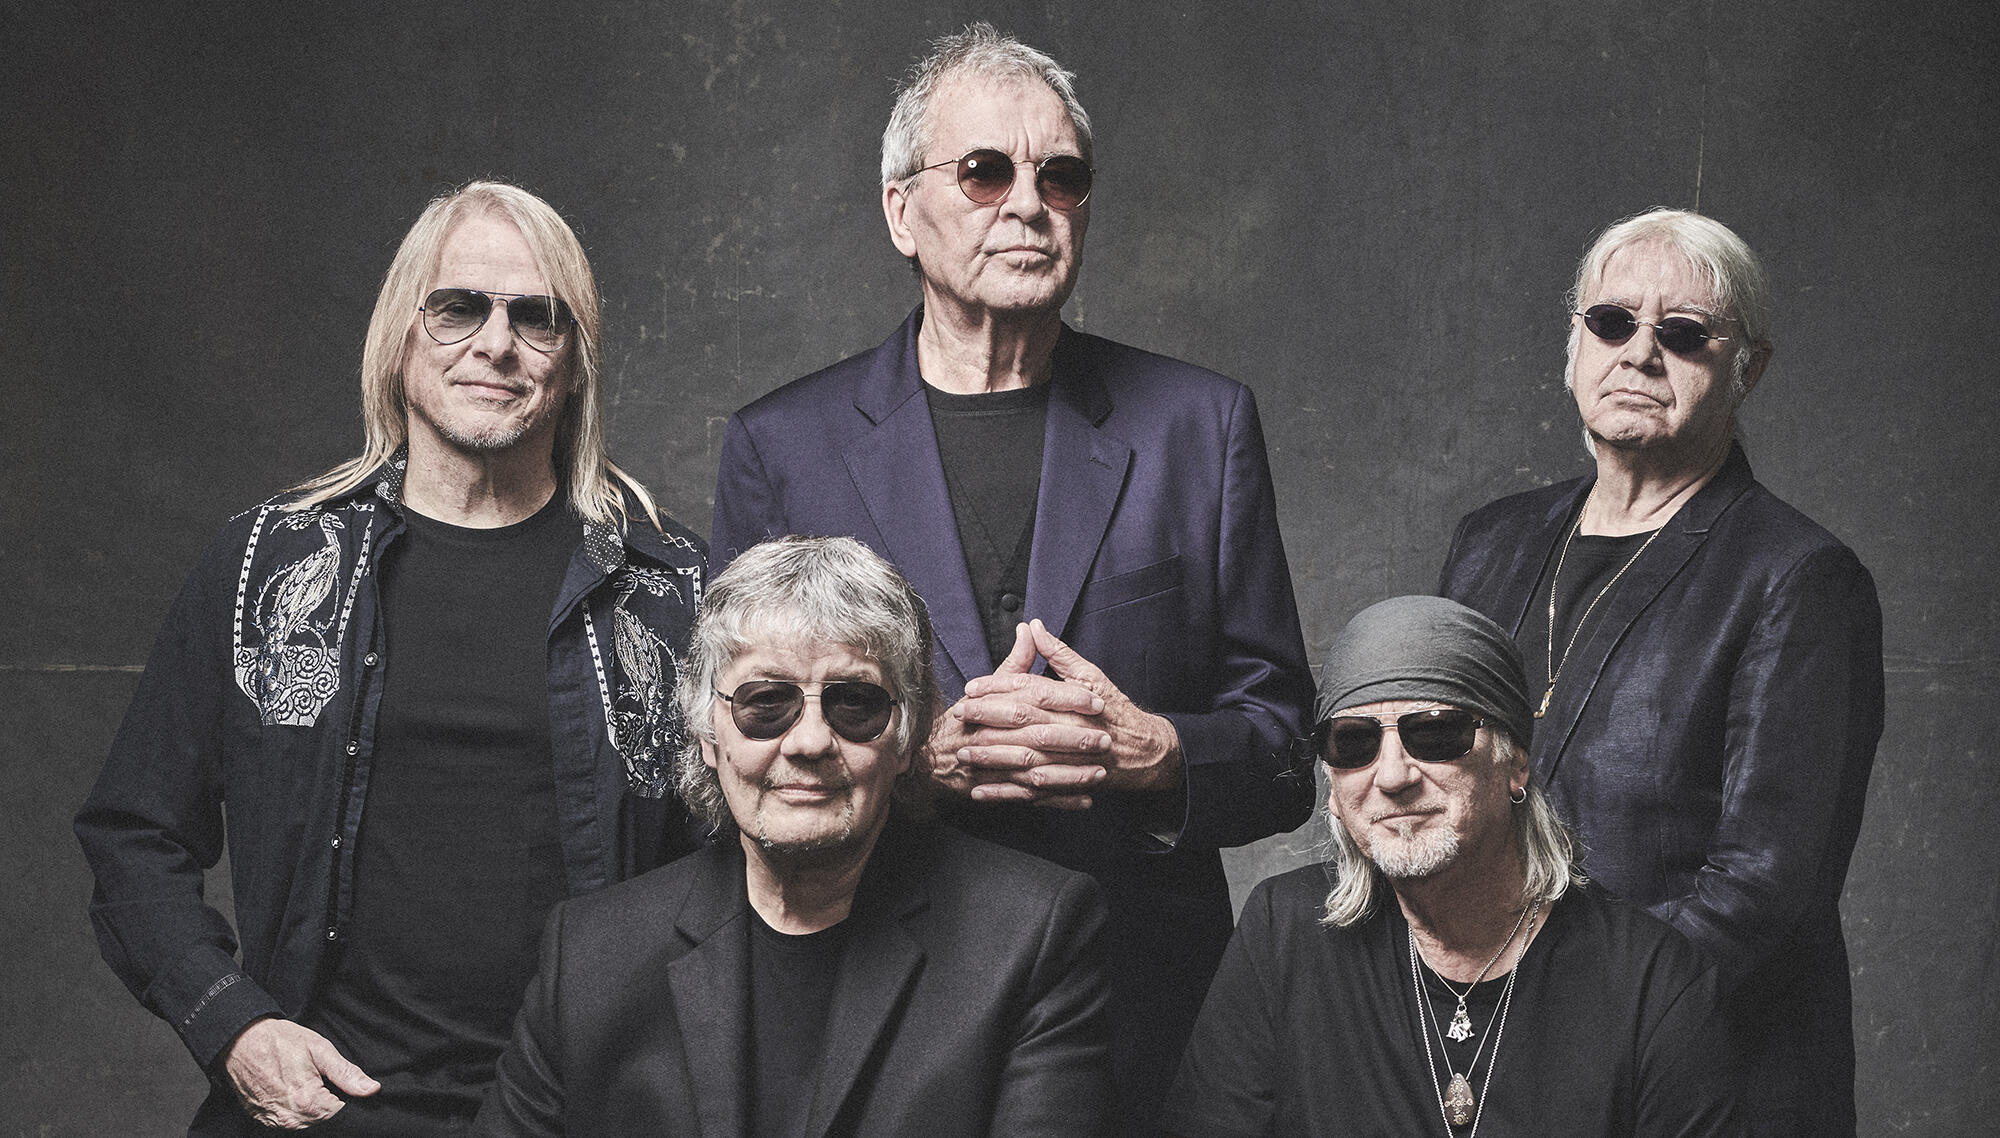 Deep Purple Is Made Up Of 'Aliens' Who Will Never Stop, Says Steve Morse